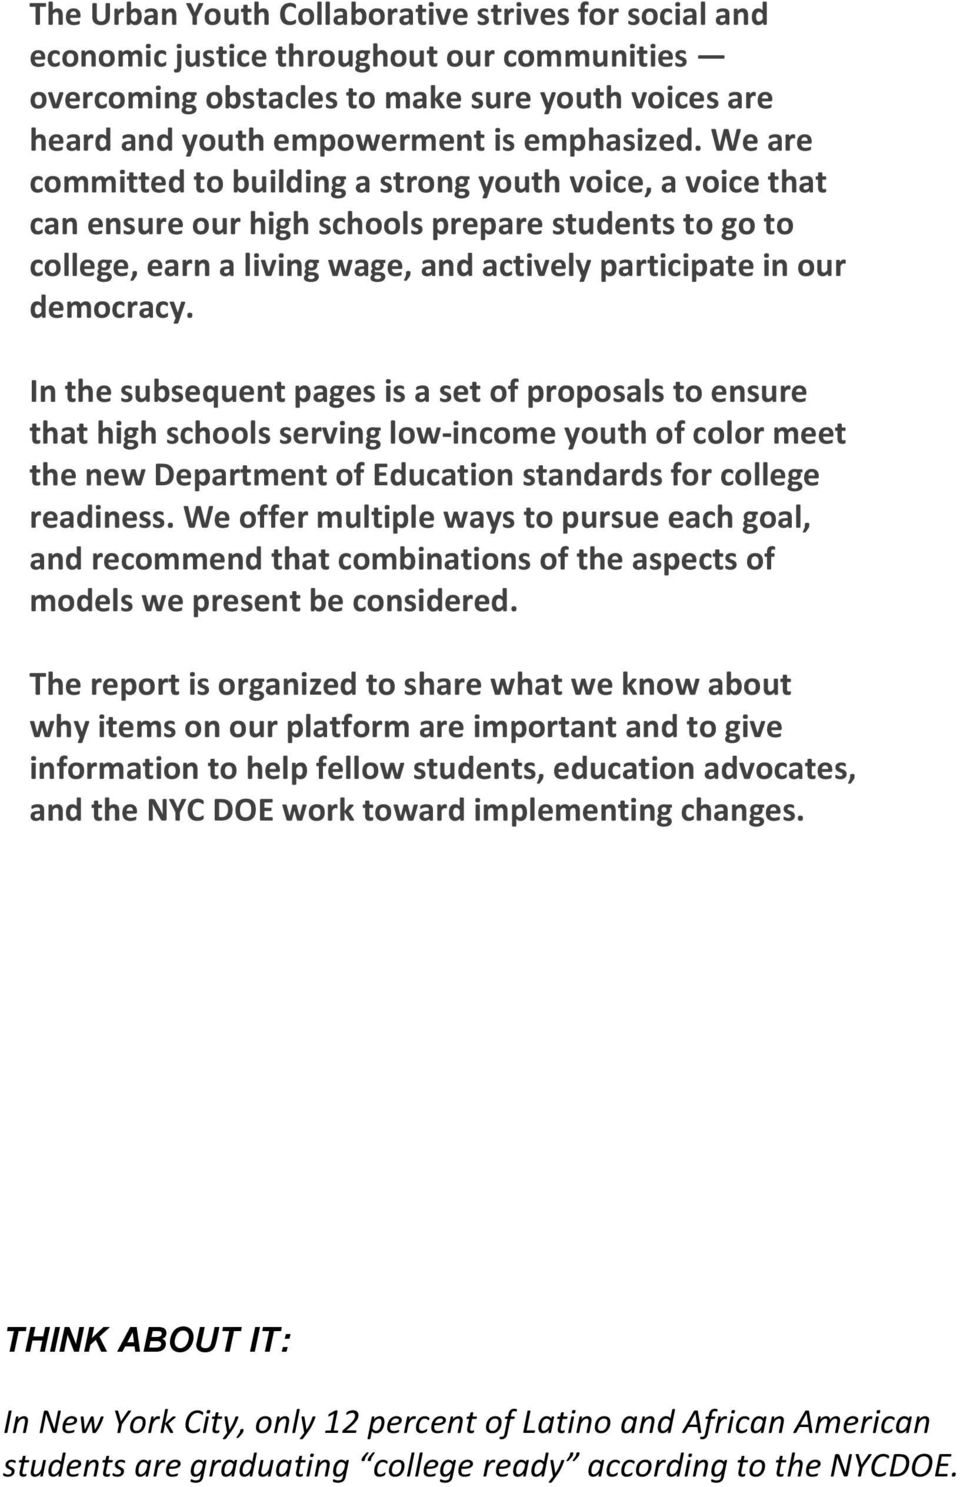 In the subsequent pages is a set of proposals to ensure that high schools serving low- income youth of color meet the new Department of Education standards for college readiness.